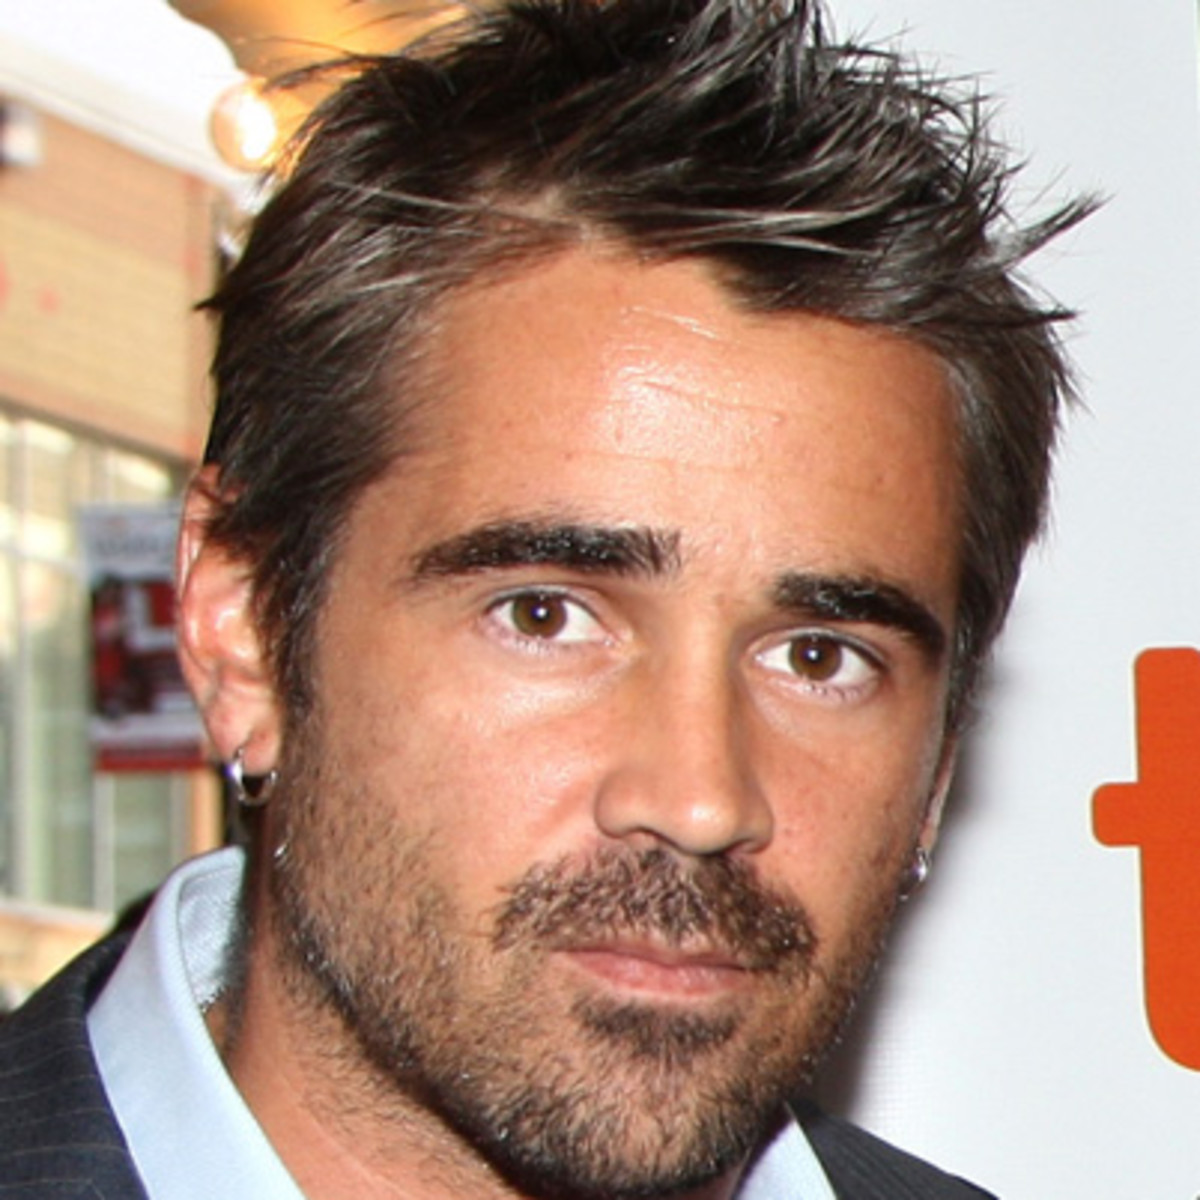 Fotos Colin Farrell nudes (21 foto and video), Sexy, Paparazzi, Selfie, swimsuit 2017